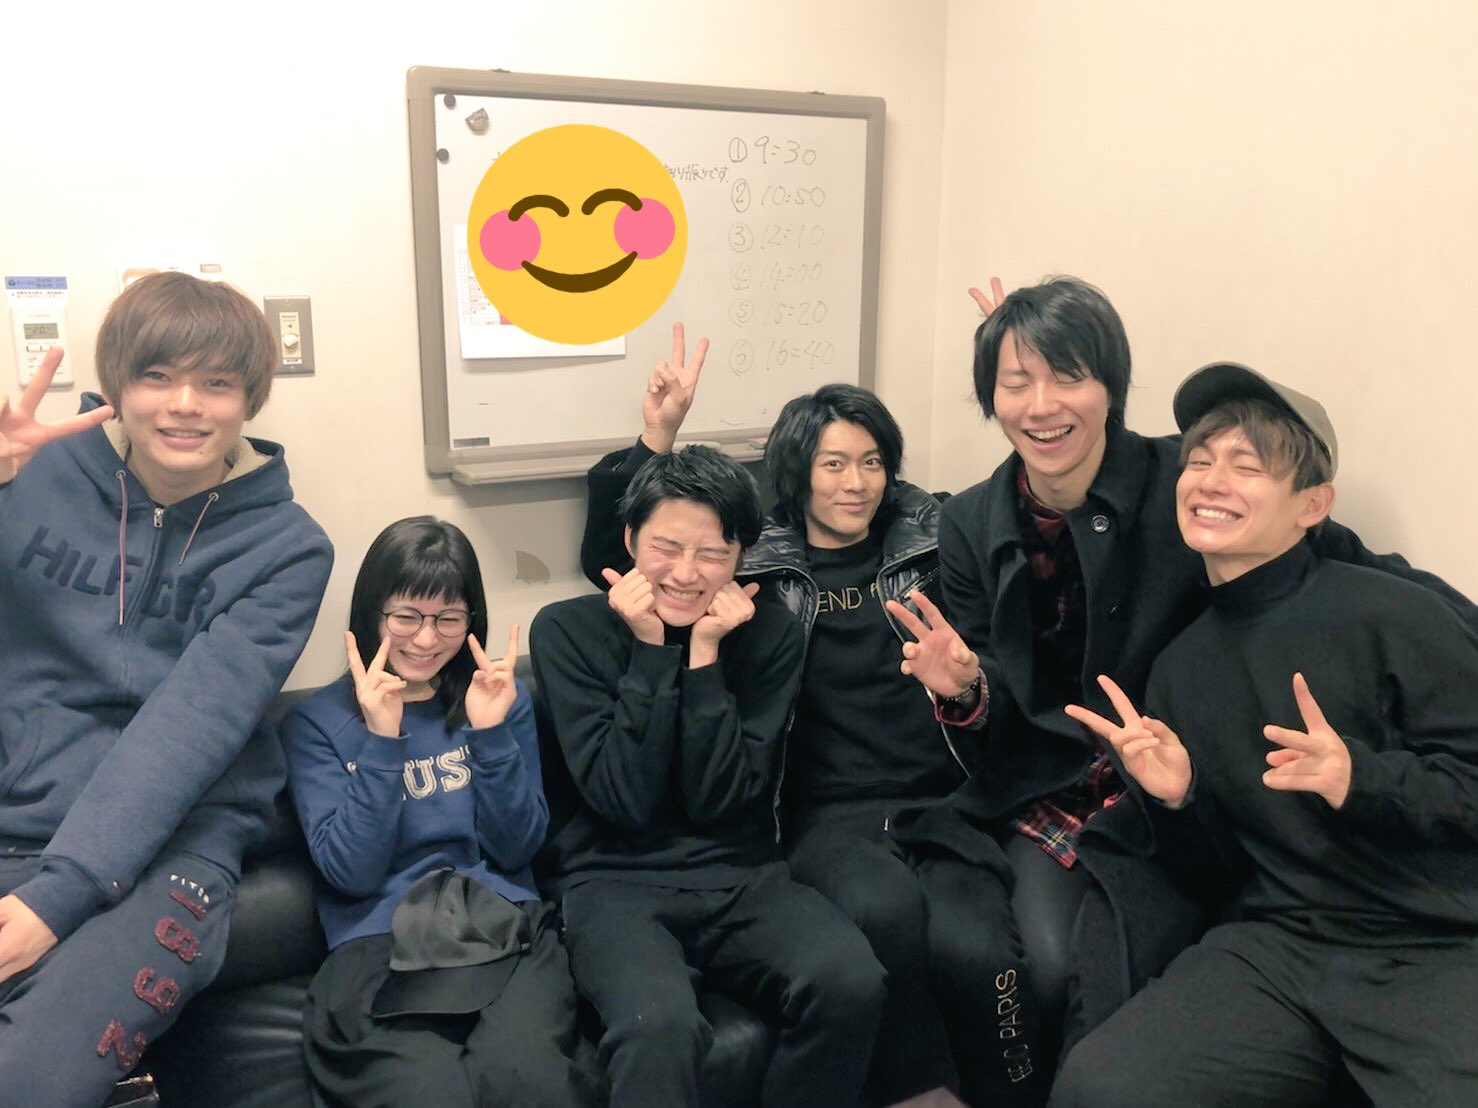 This Week in Toku Actor Blogs [1/28 to 2/3]